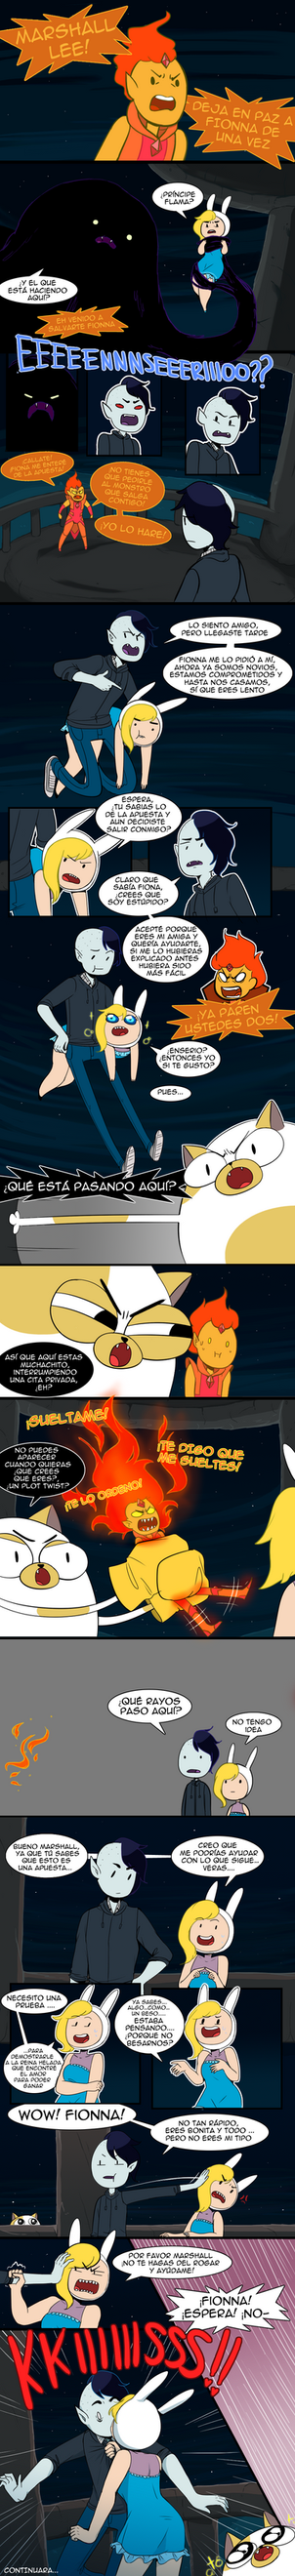 Fiolee pag 11 by malengil